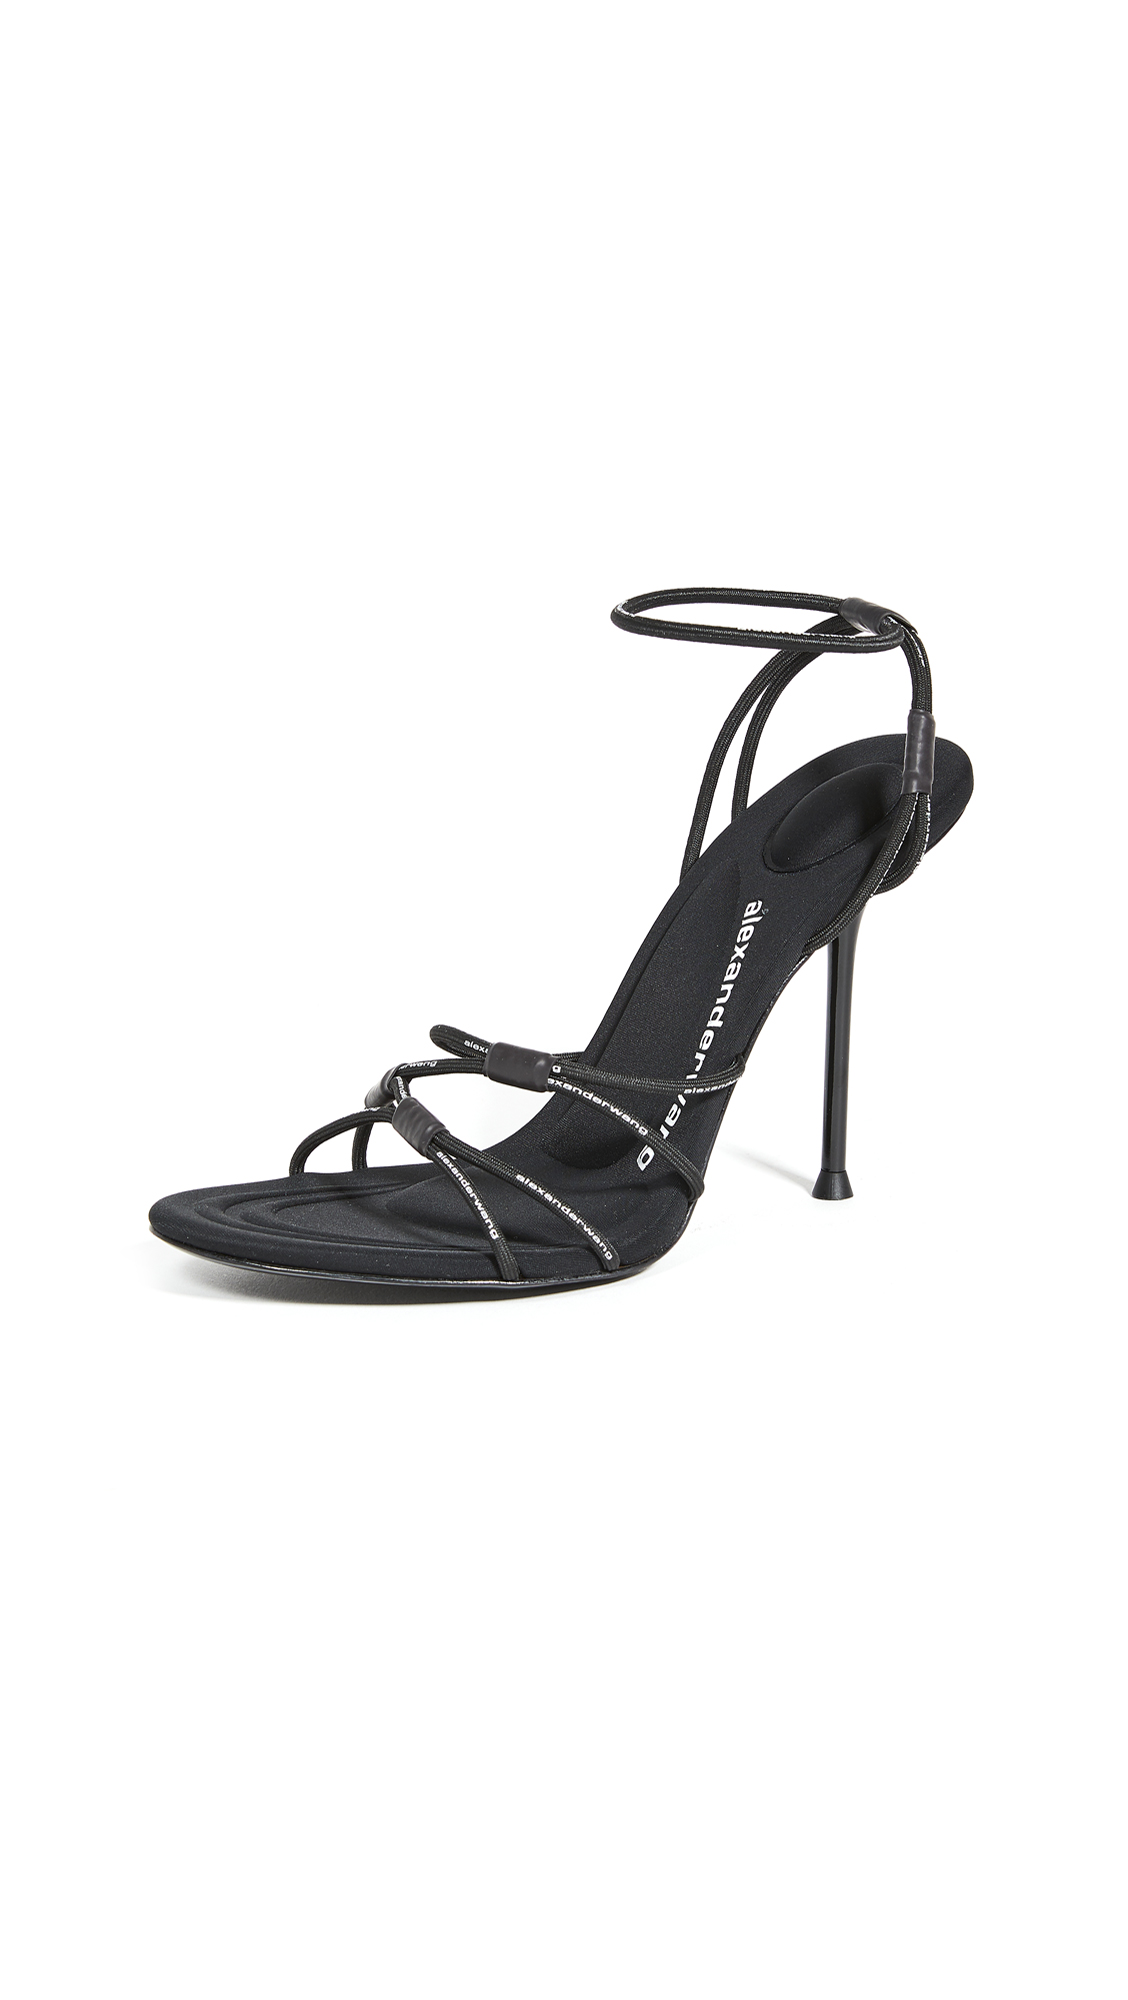 Alexander Wang 100mm Sienna Logo Sandals